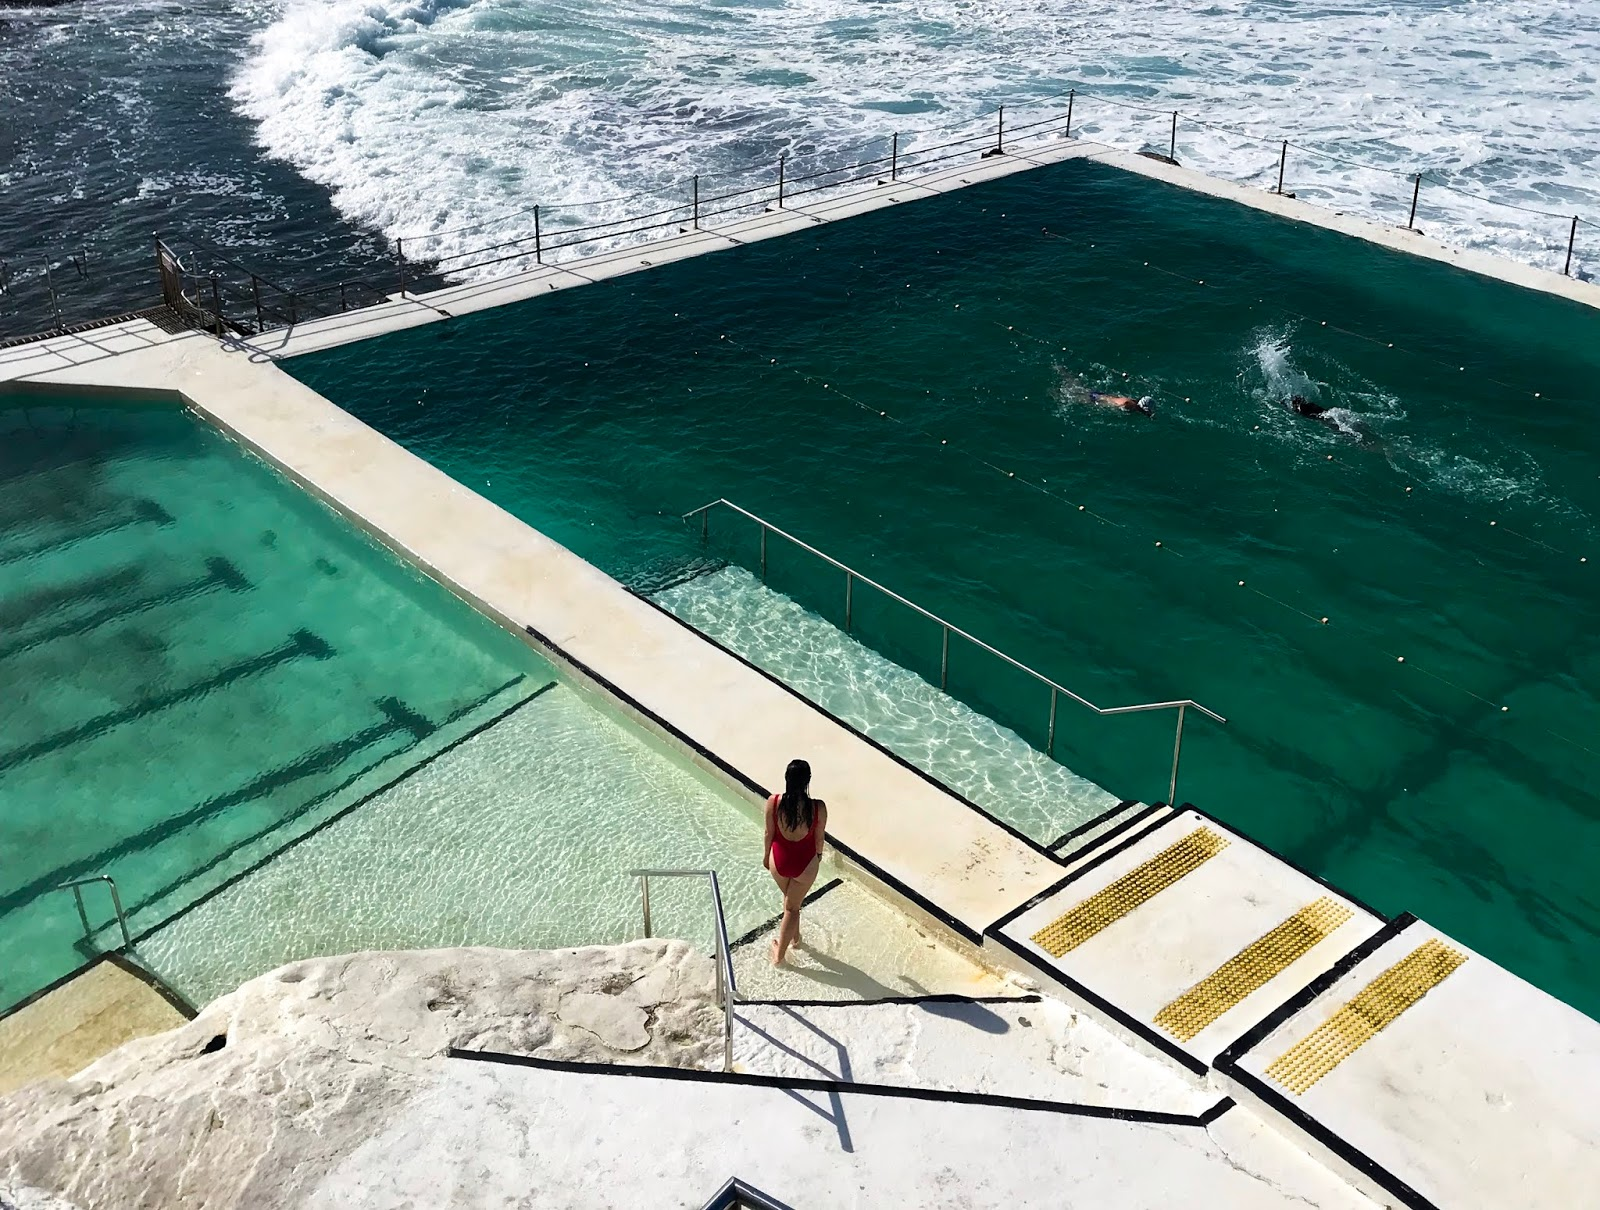 swimming pool at Bondi Beach